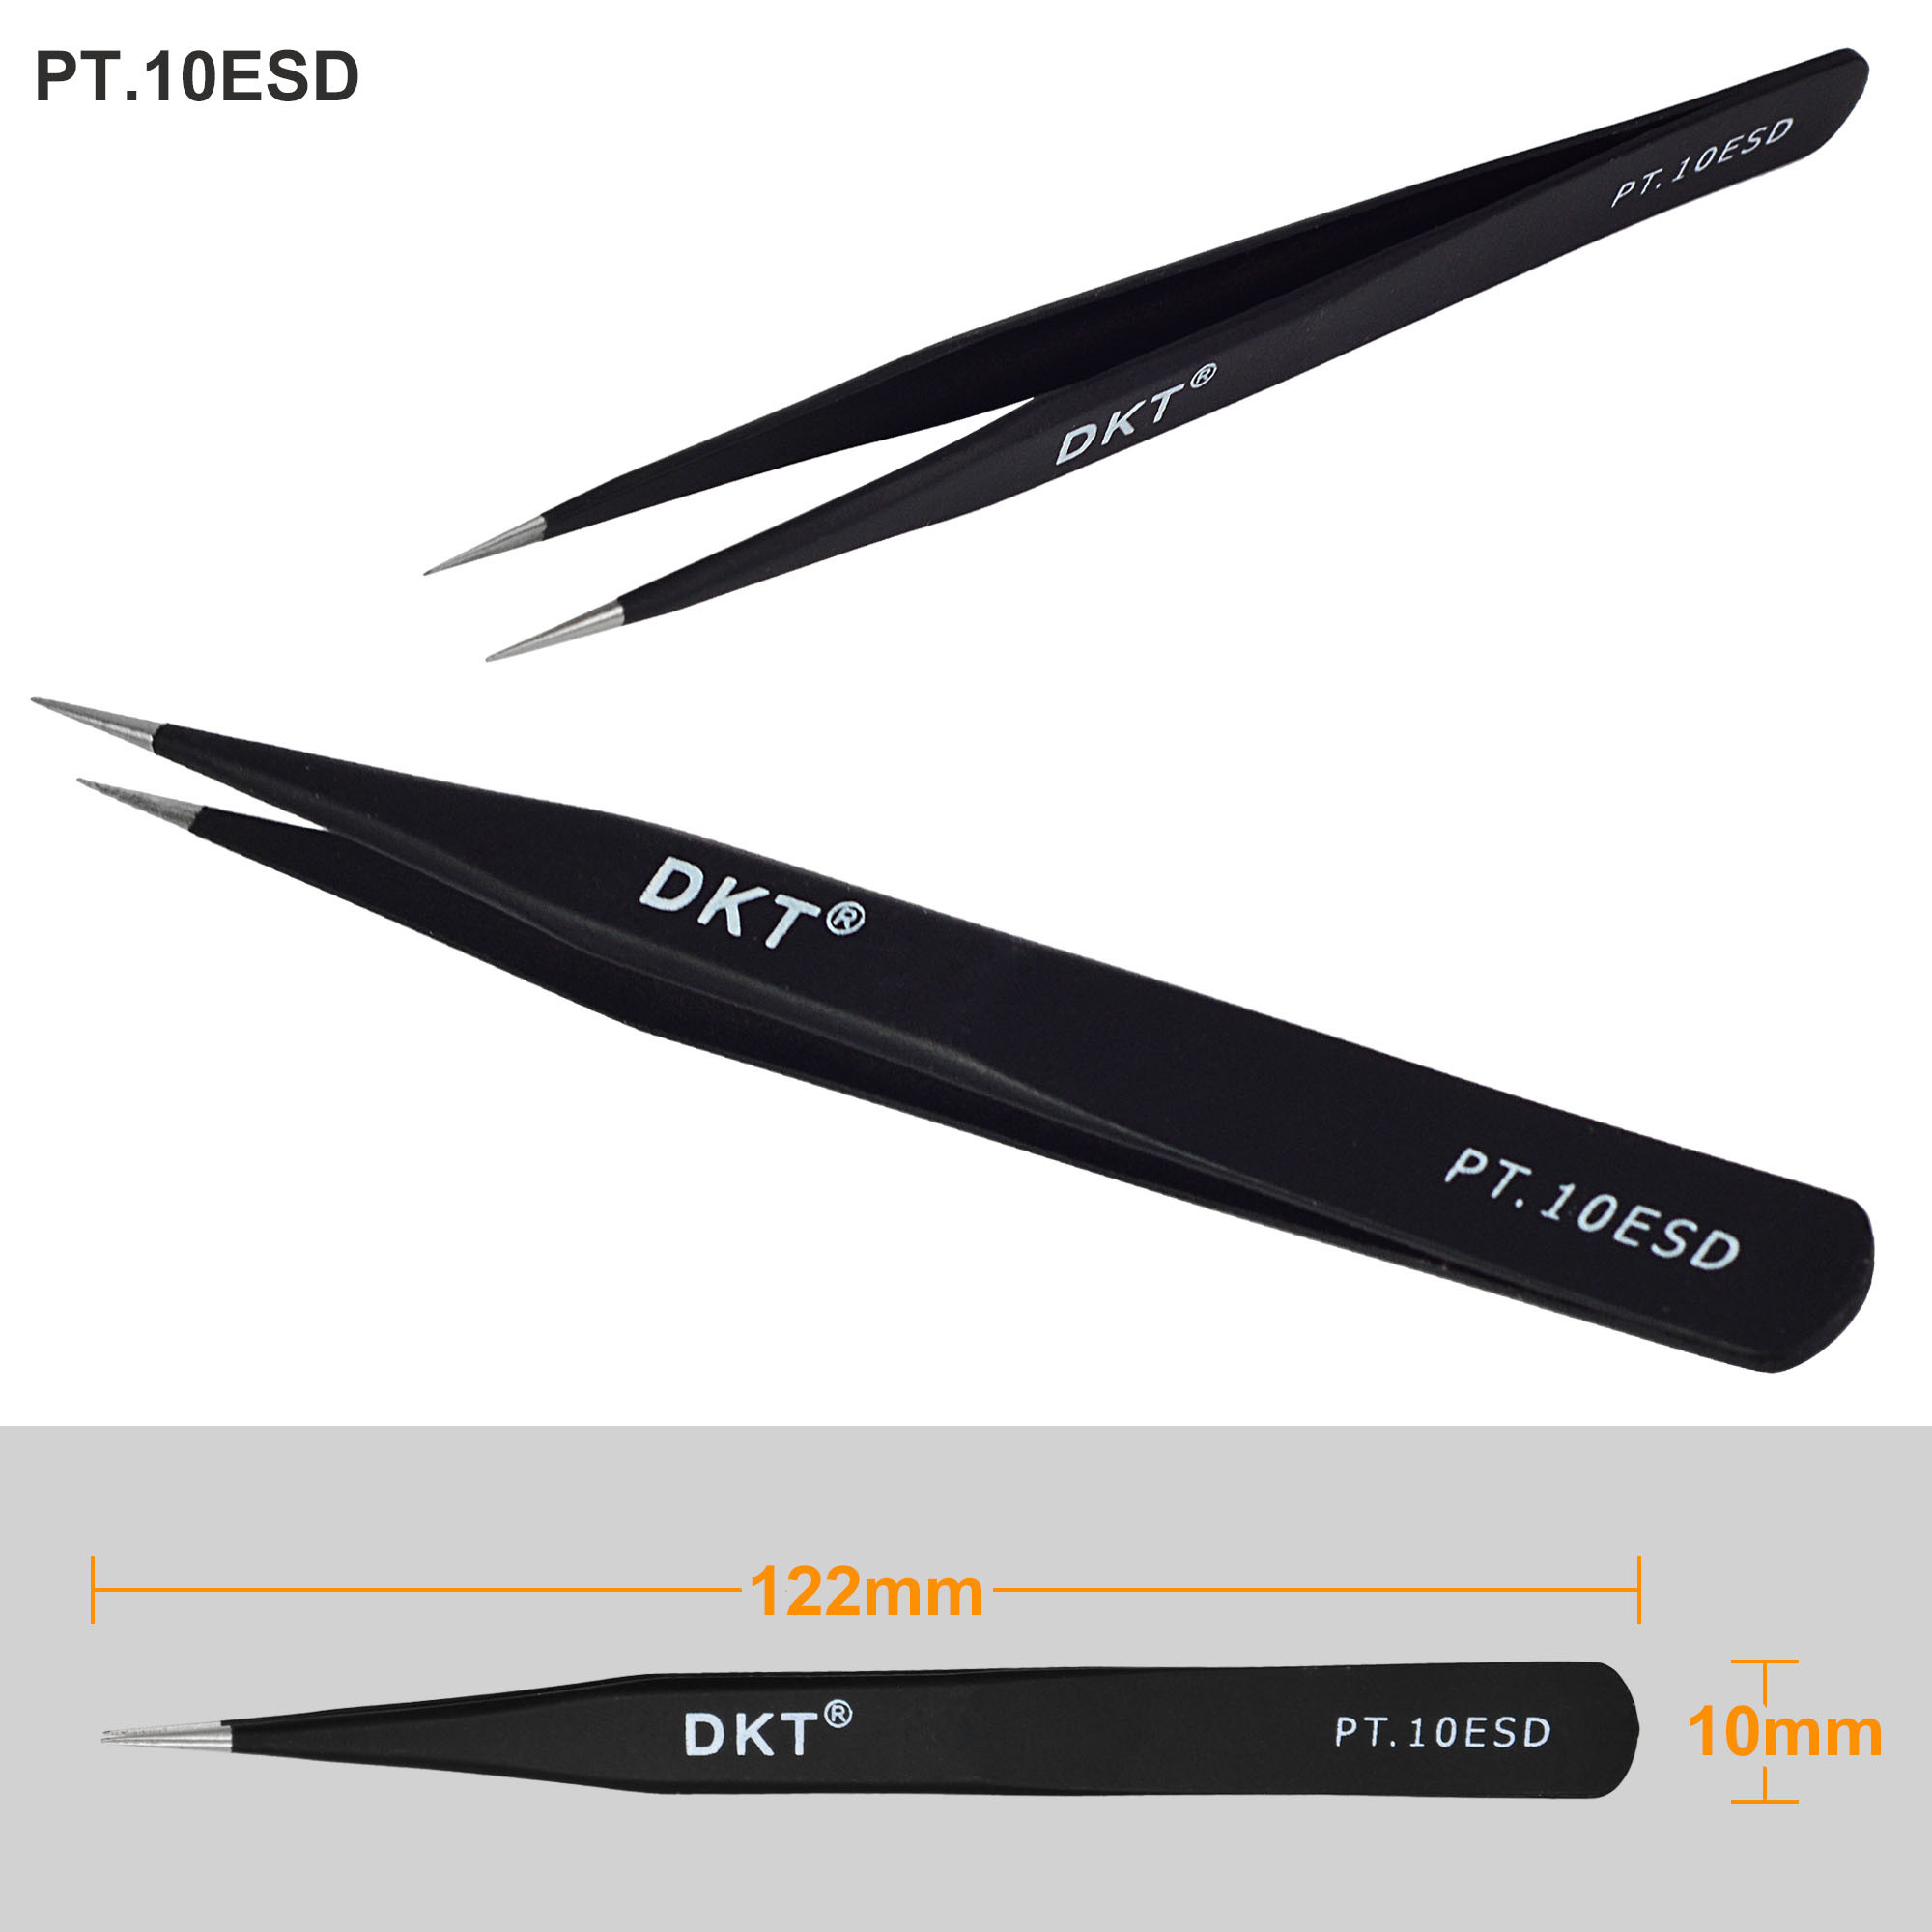 6pcs Set Professional Safe Anti Static Tweezer Maintenance Repair Circuit Board Kit In Esdsafe Case Tool Kits Curved Esd Led Lights Photography Accessories